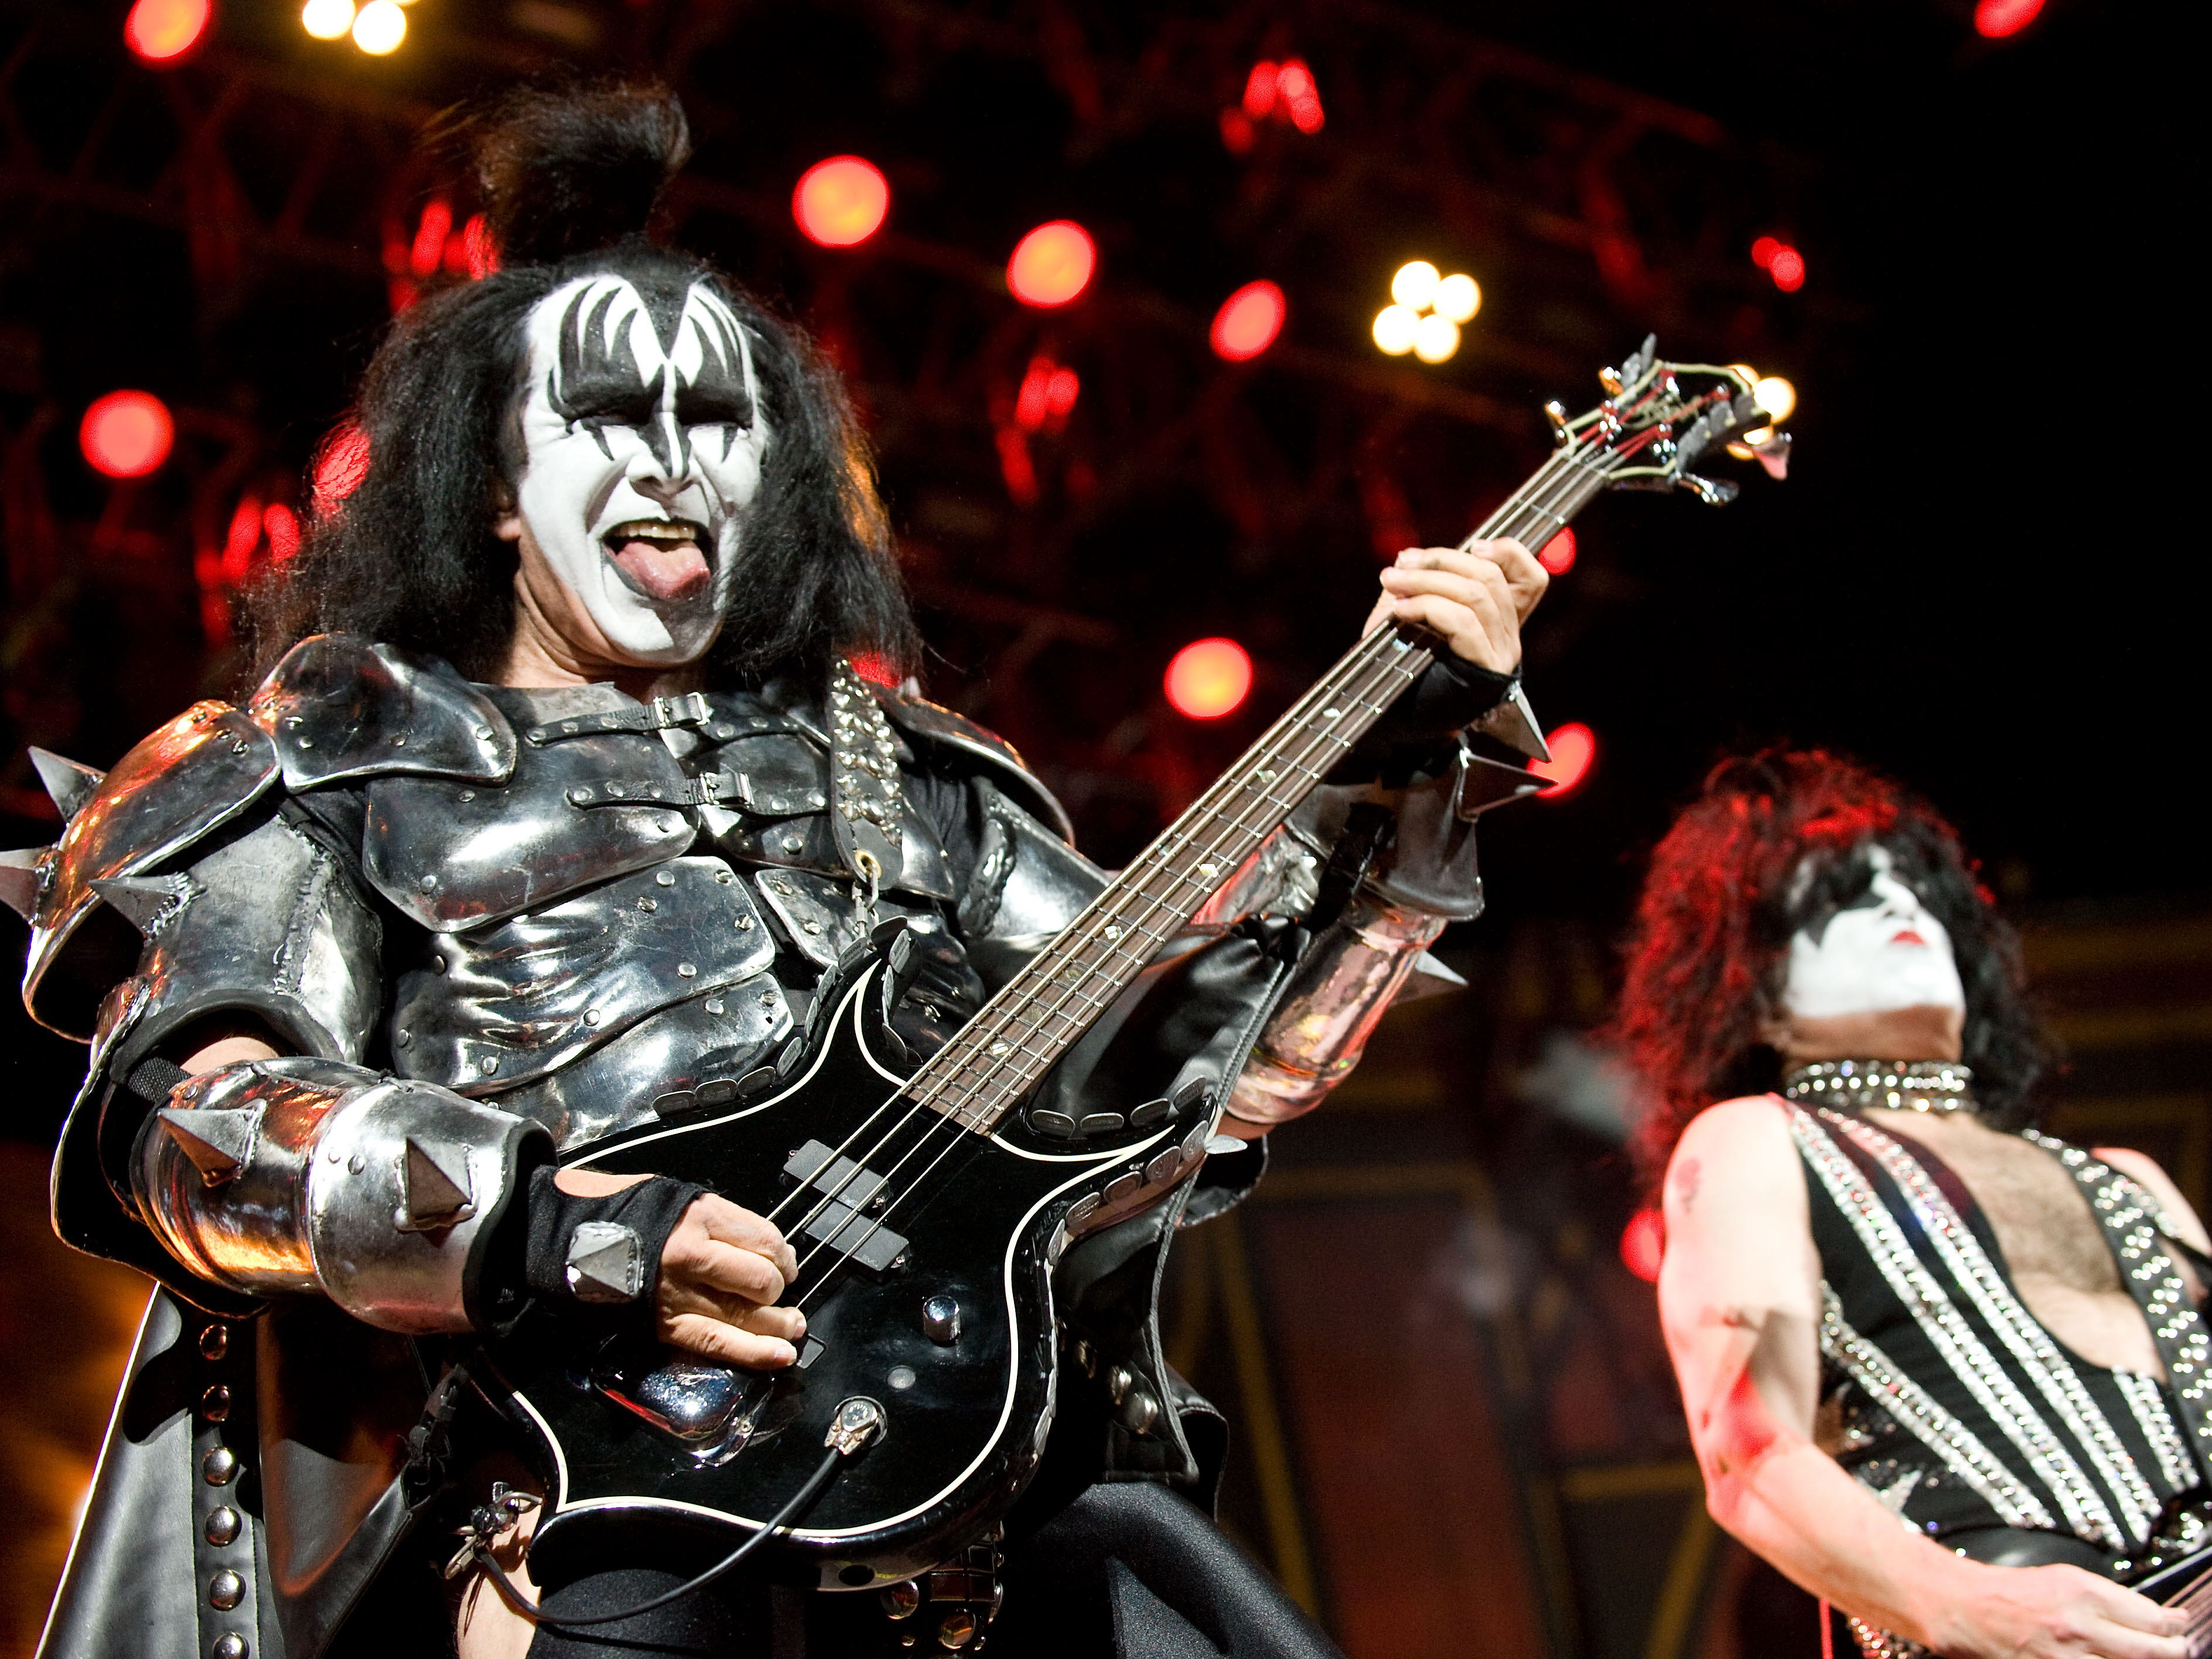 Gene Simmons (L) and Paul Stanley of US rock group Kiss perform at the Verizon Center in Washington on October 13, 2009.